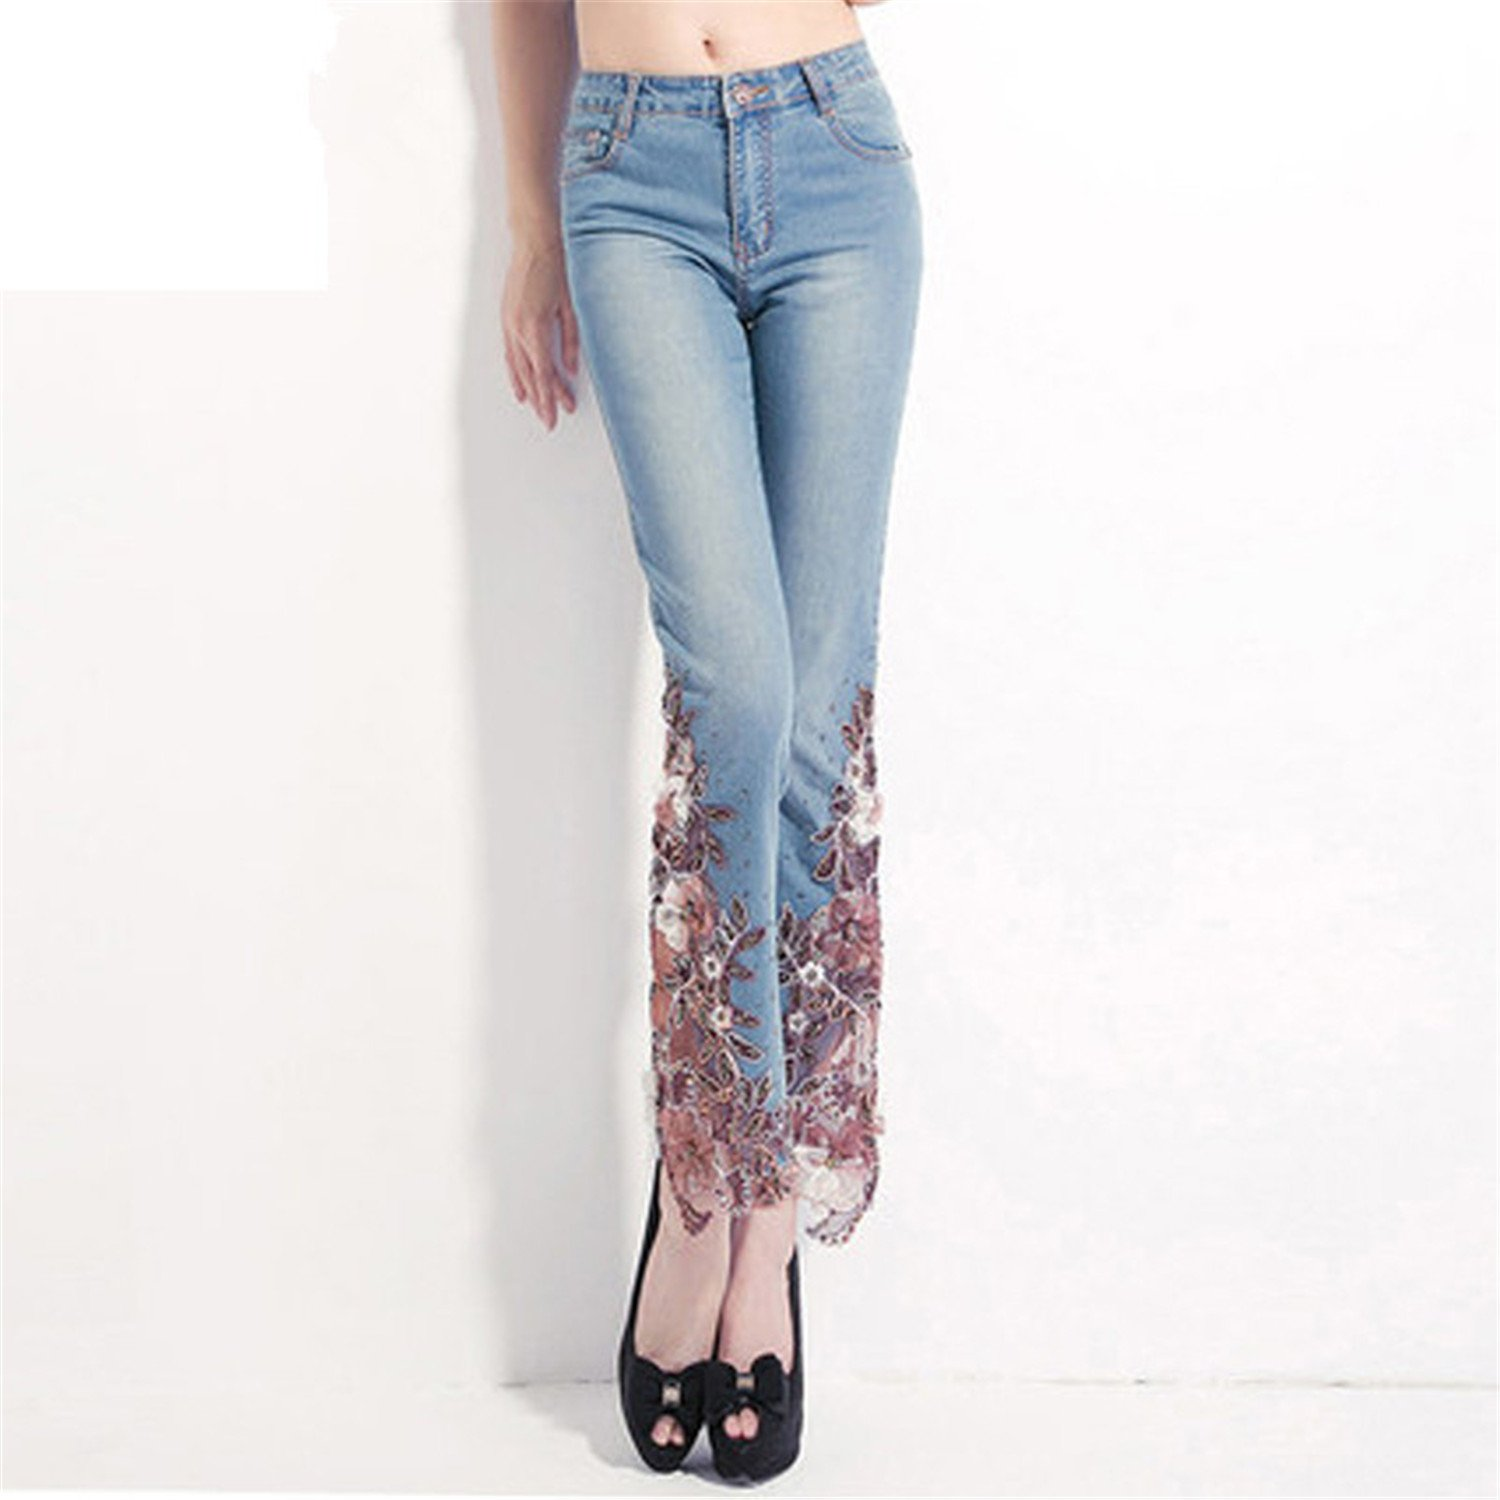 Hoared 2017 Spring Embroidered Jeans Woman Lace Spliced High Waist Denim Jeans Plus Size